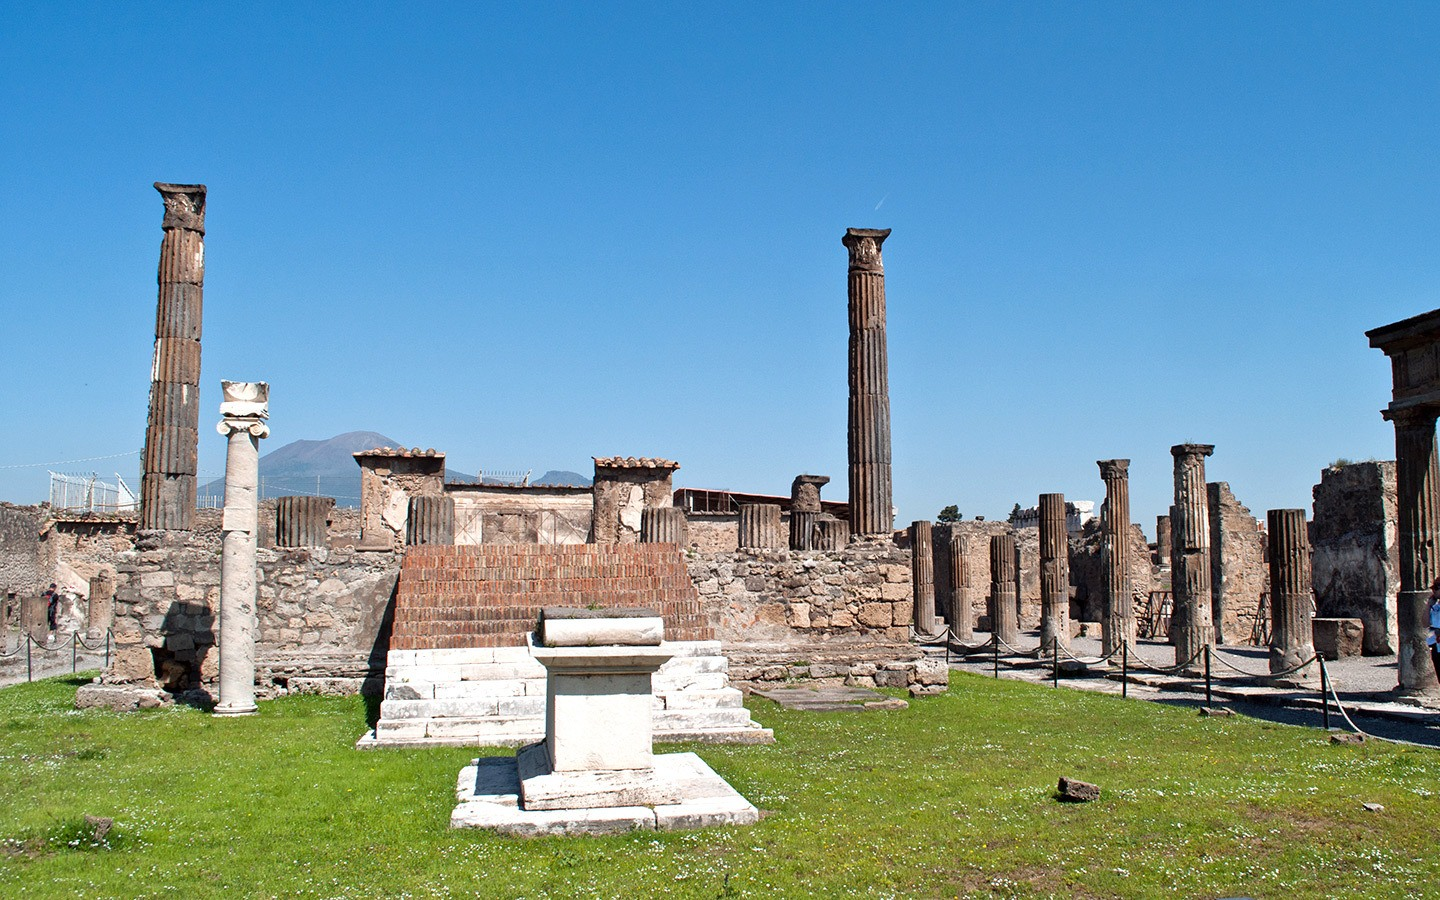 The buried Roman city of Pompeii, Italy